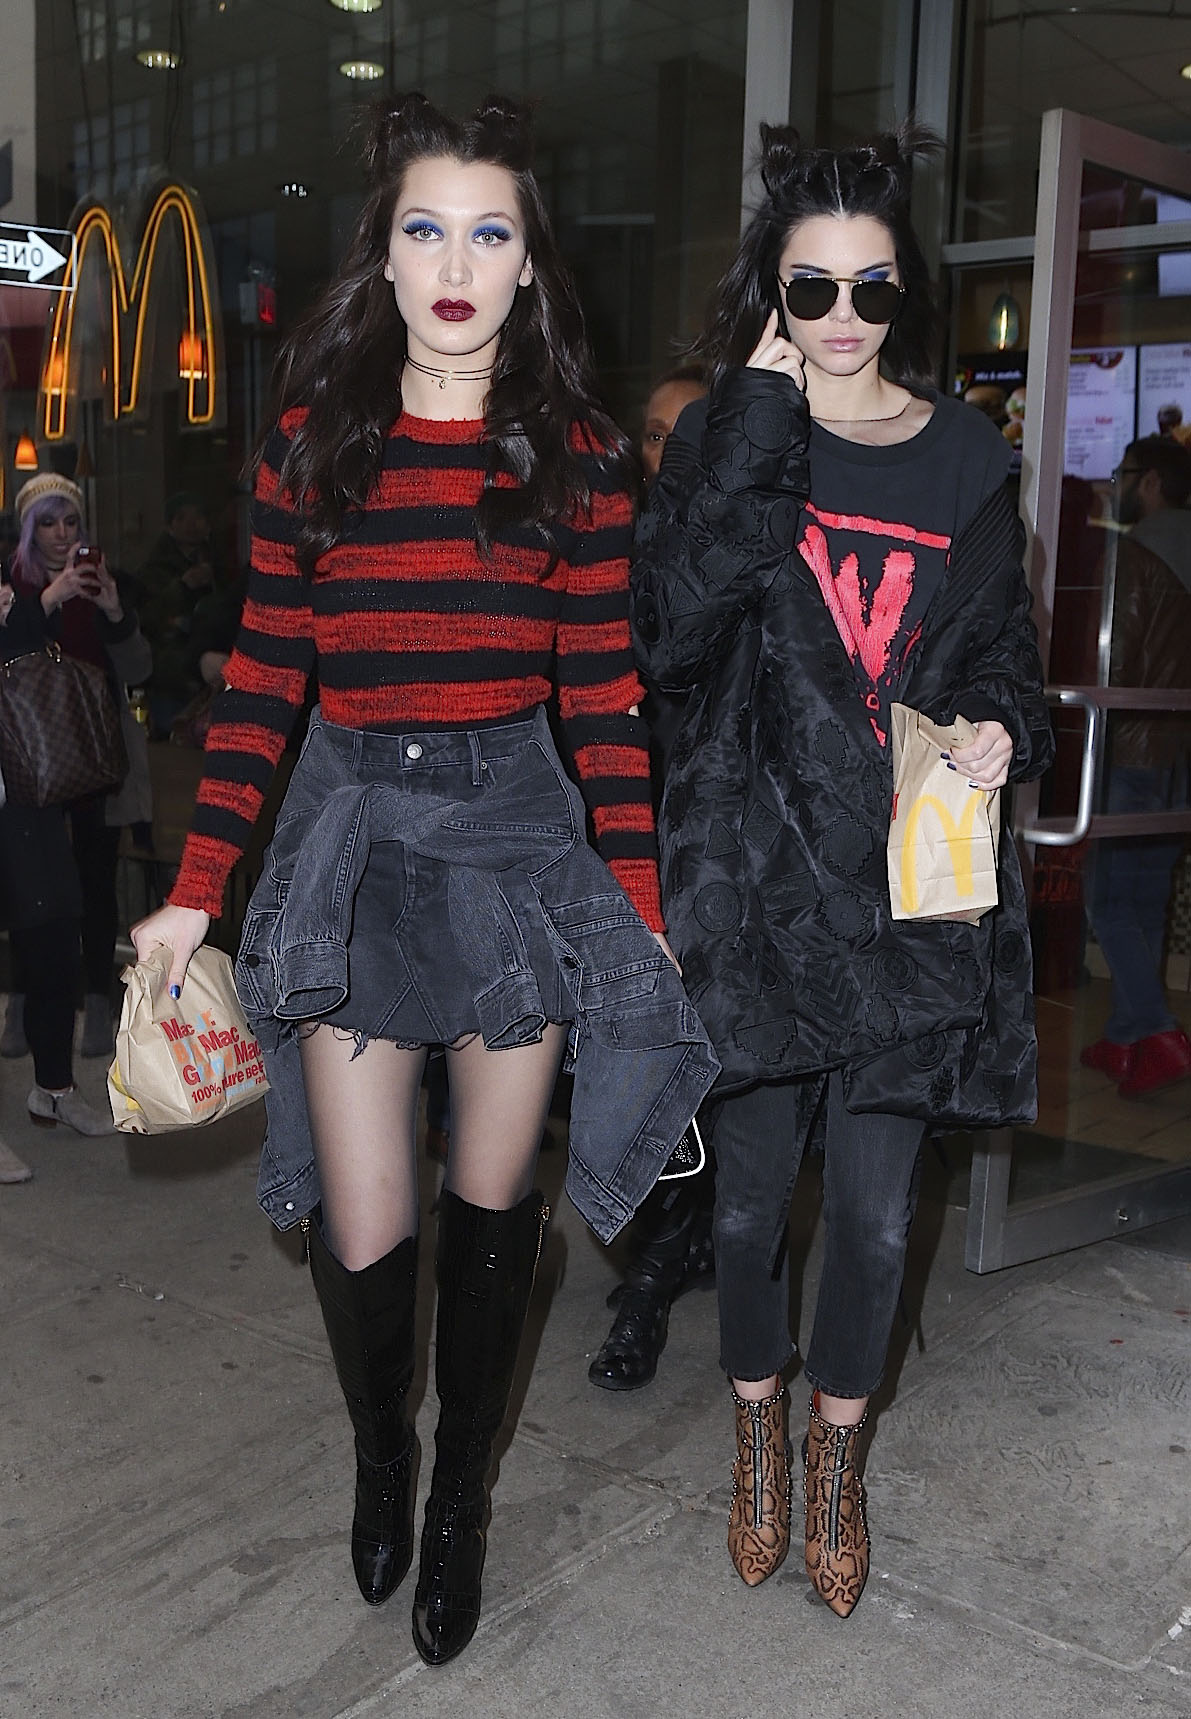 Kendall Jenner and Bella Hadid Grab McDonalds Together Dressed in Grunge